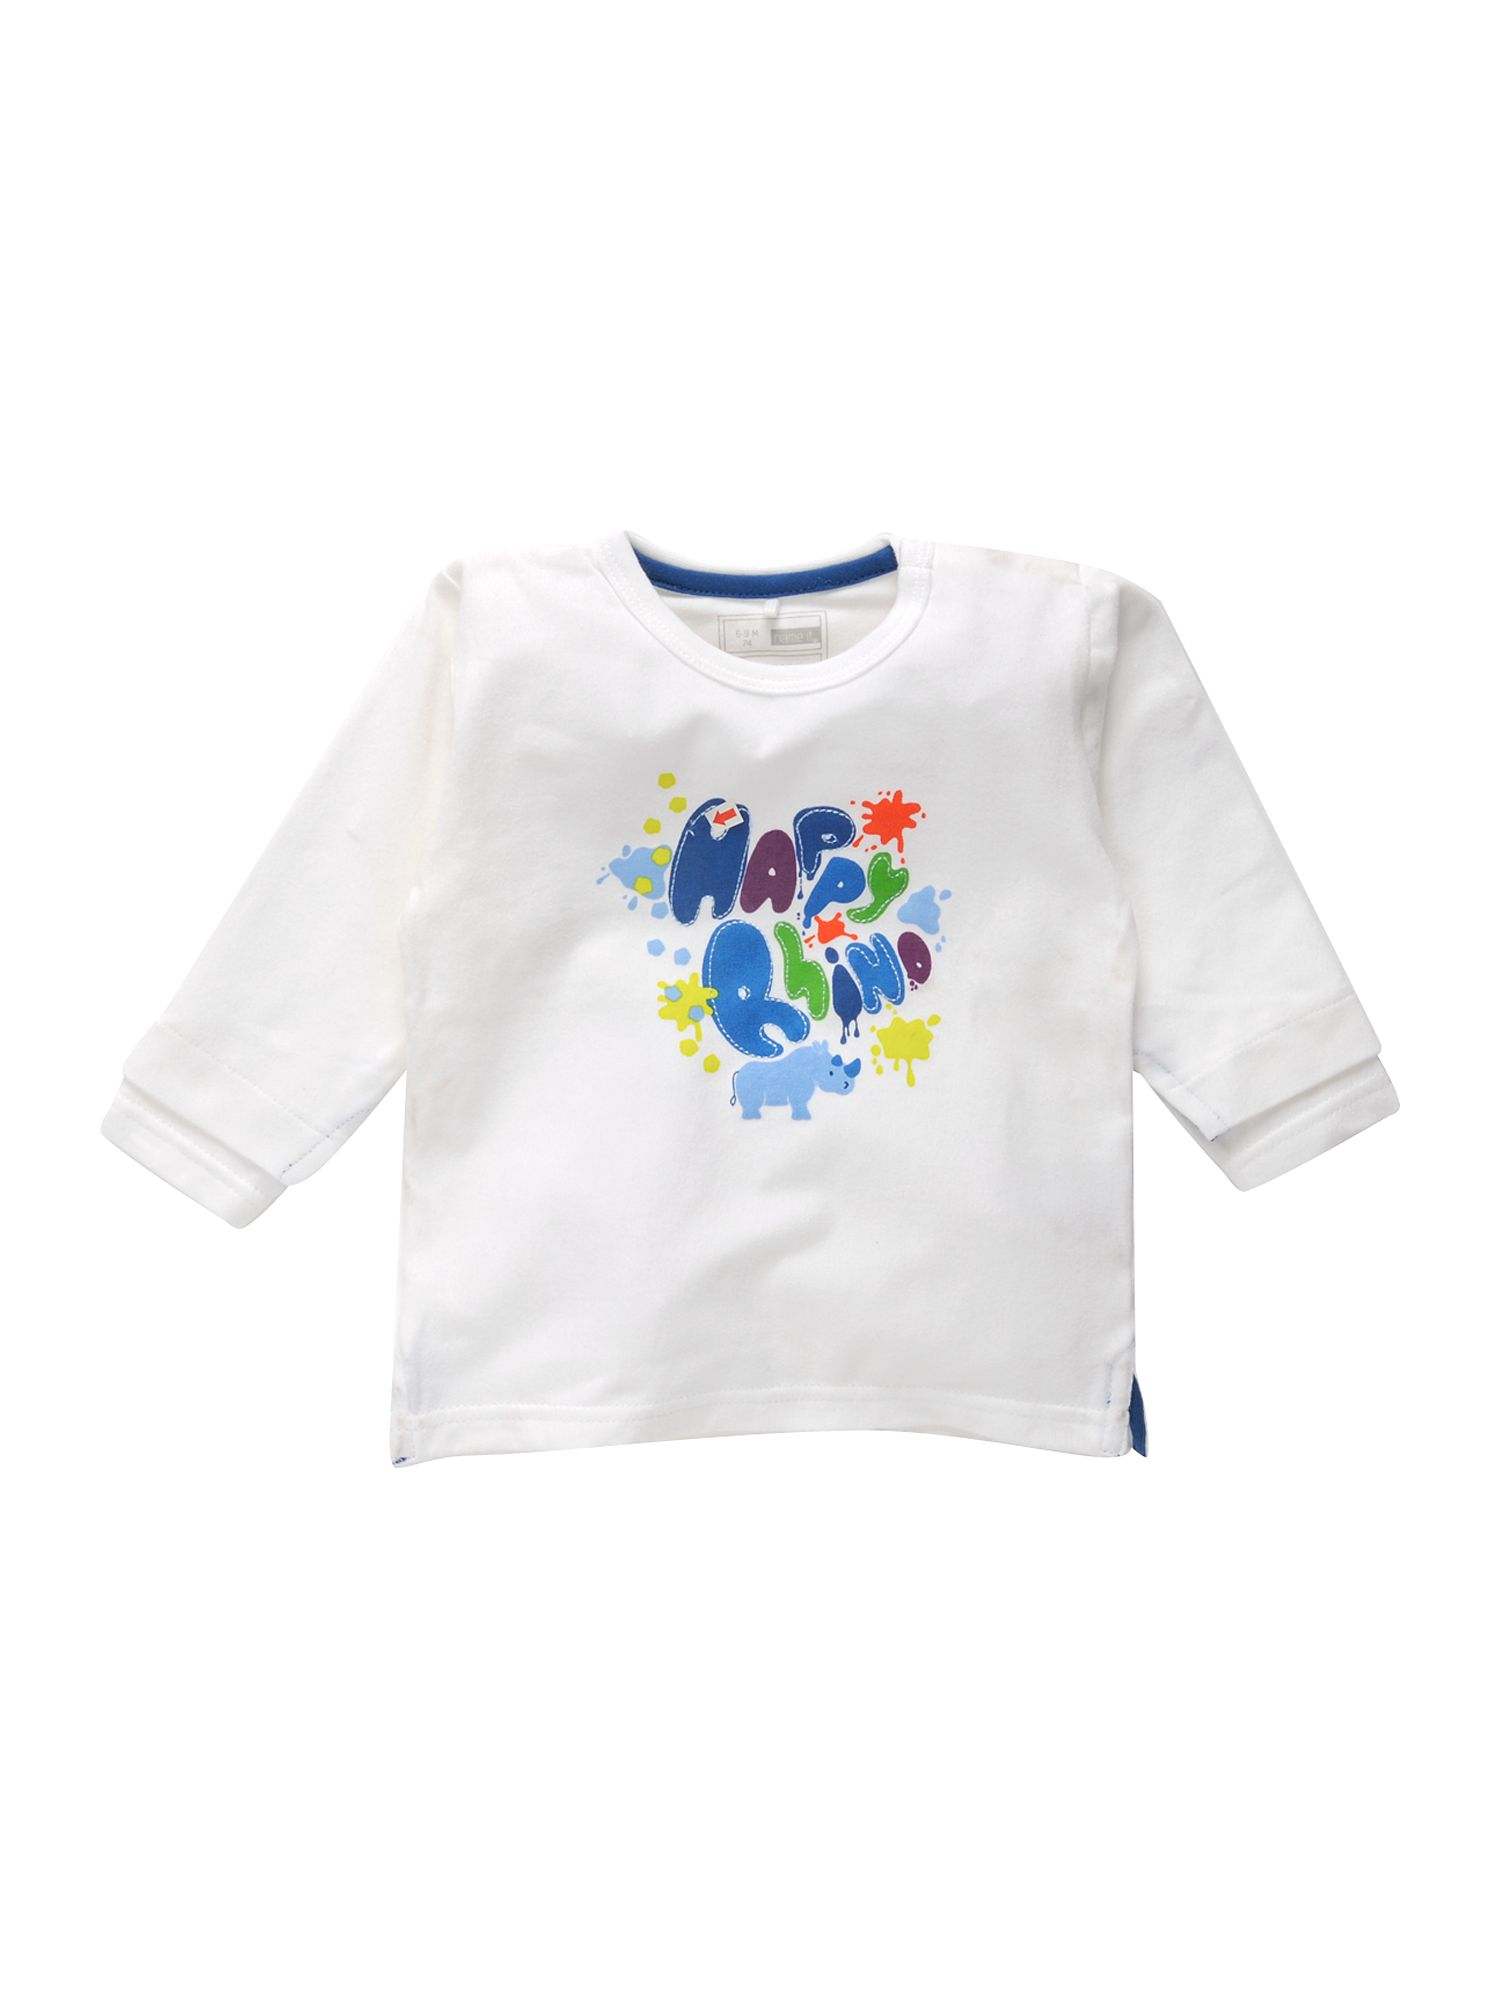 Name It Long-sleeved happy rhino printed T-shirt White product image